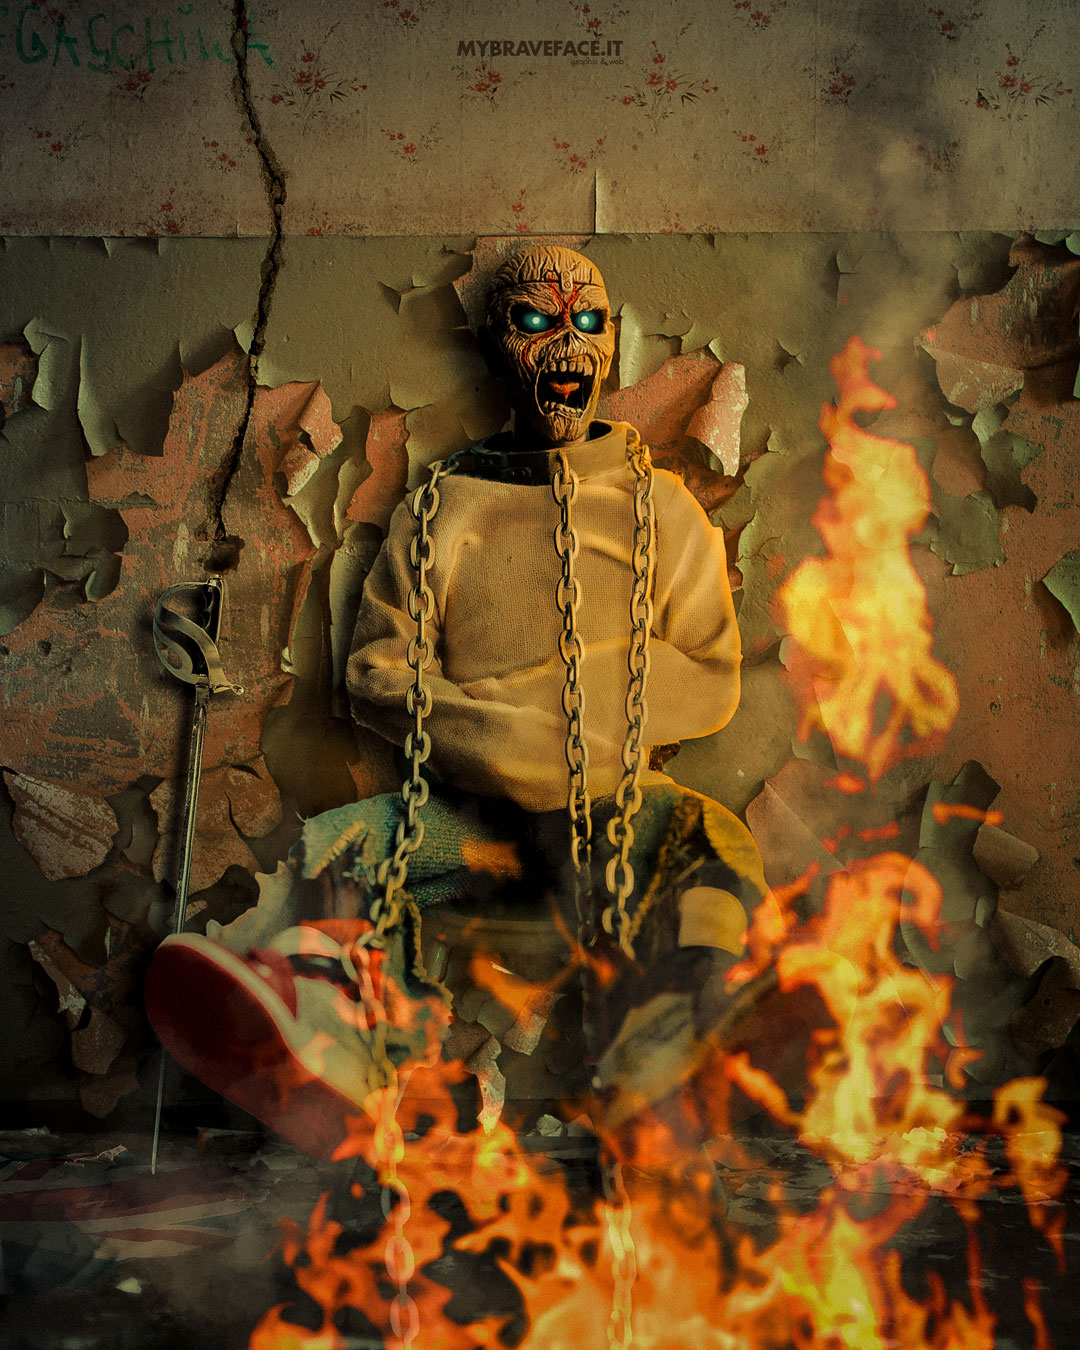 Eddie in cage - Photo Manipulation